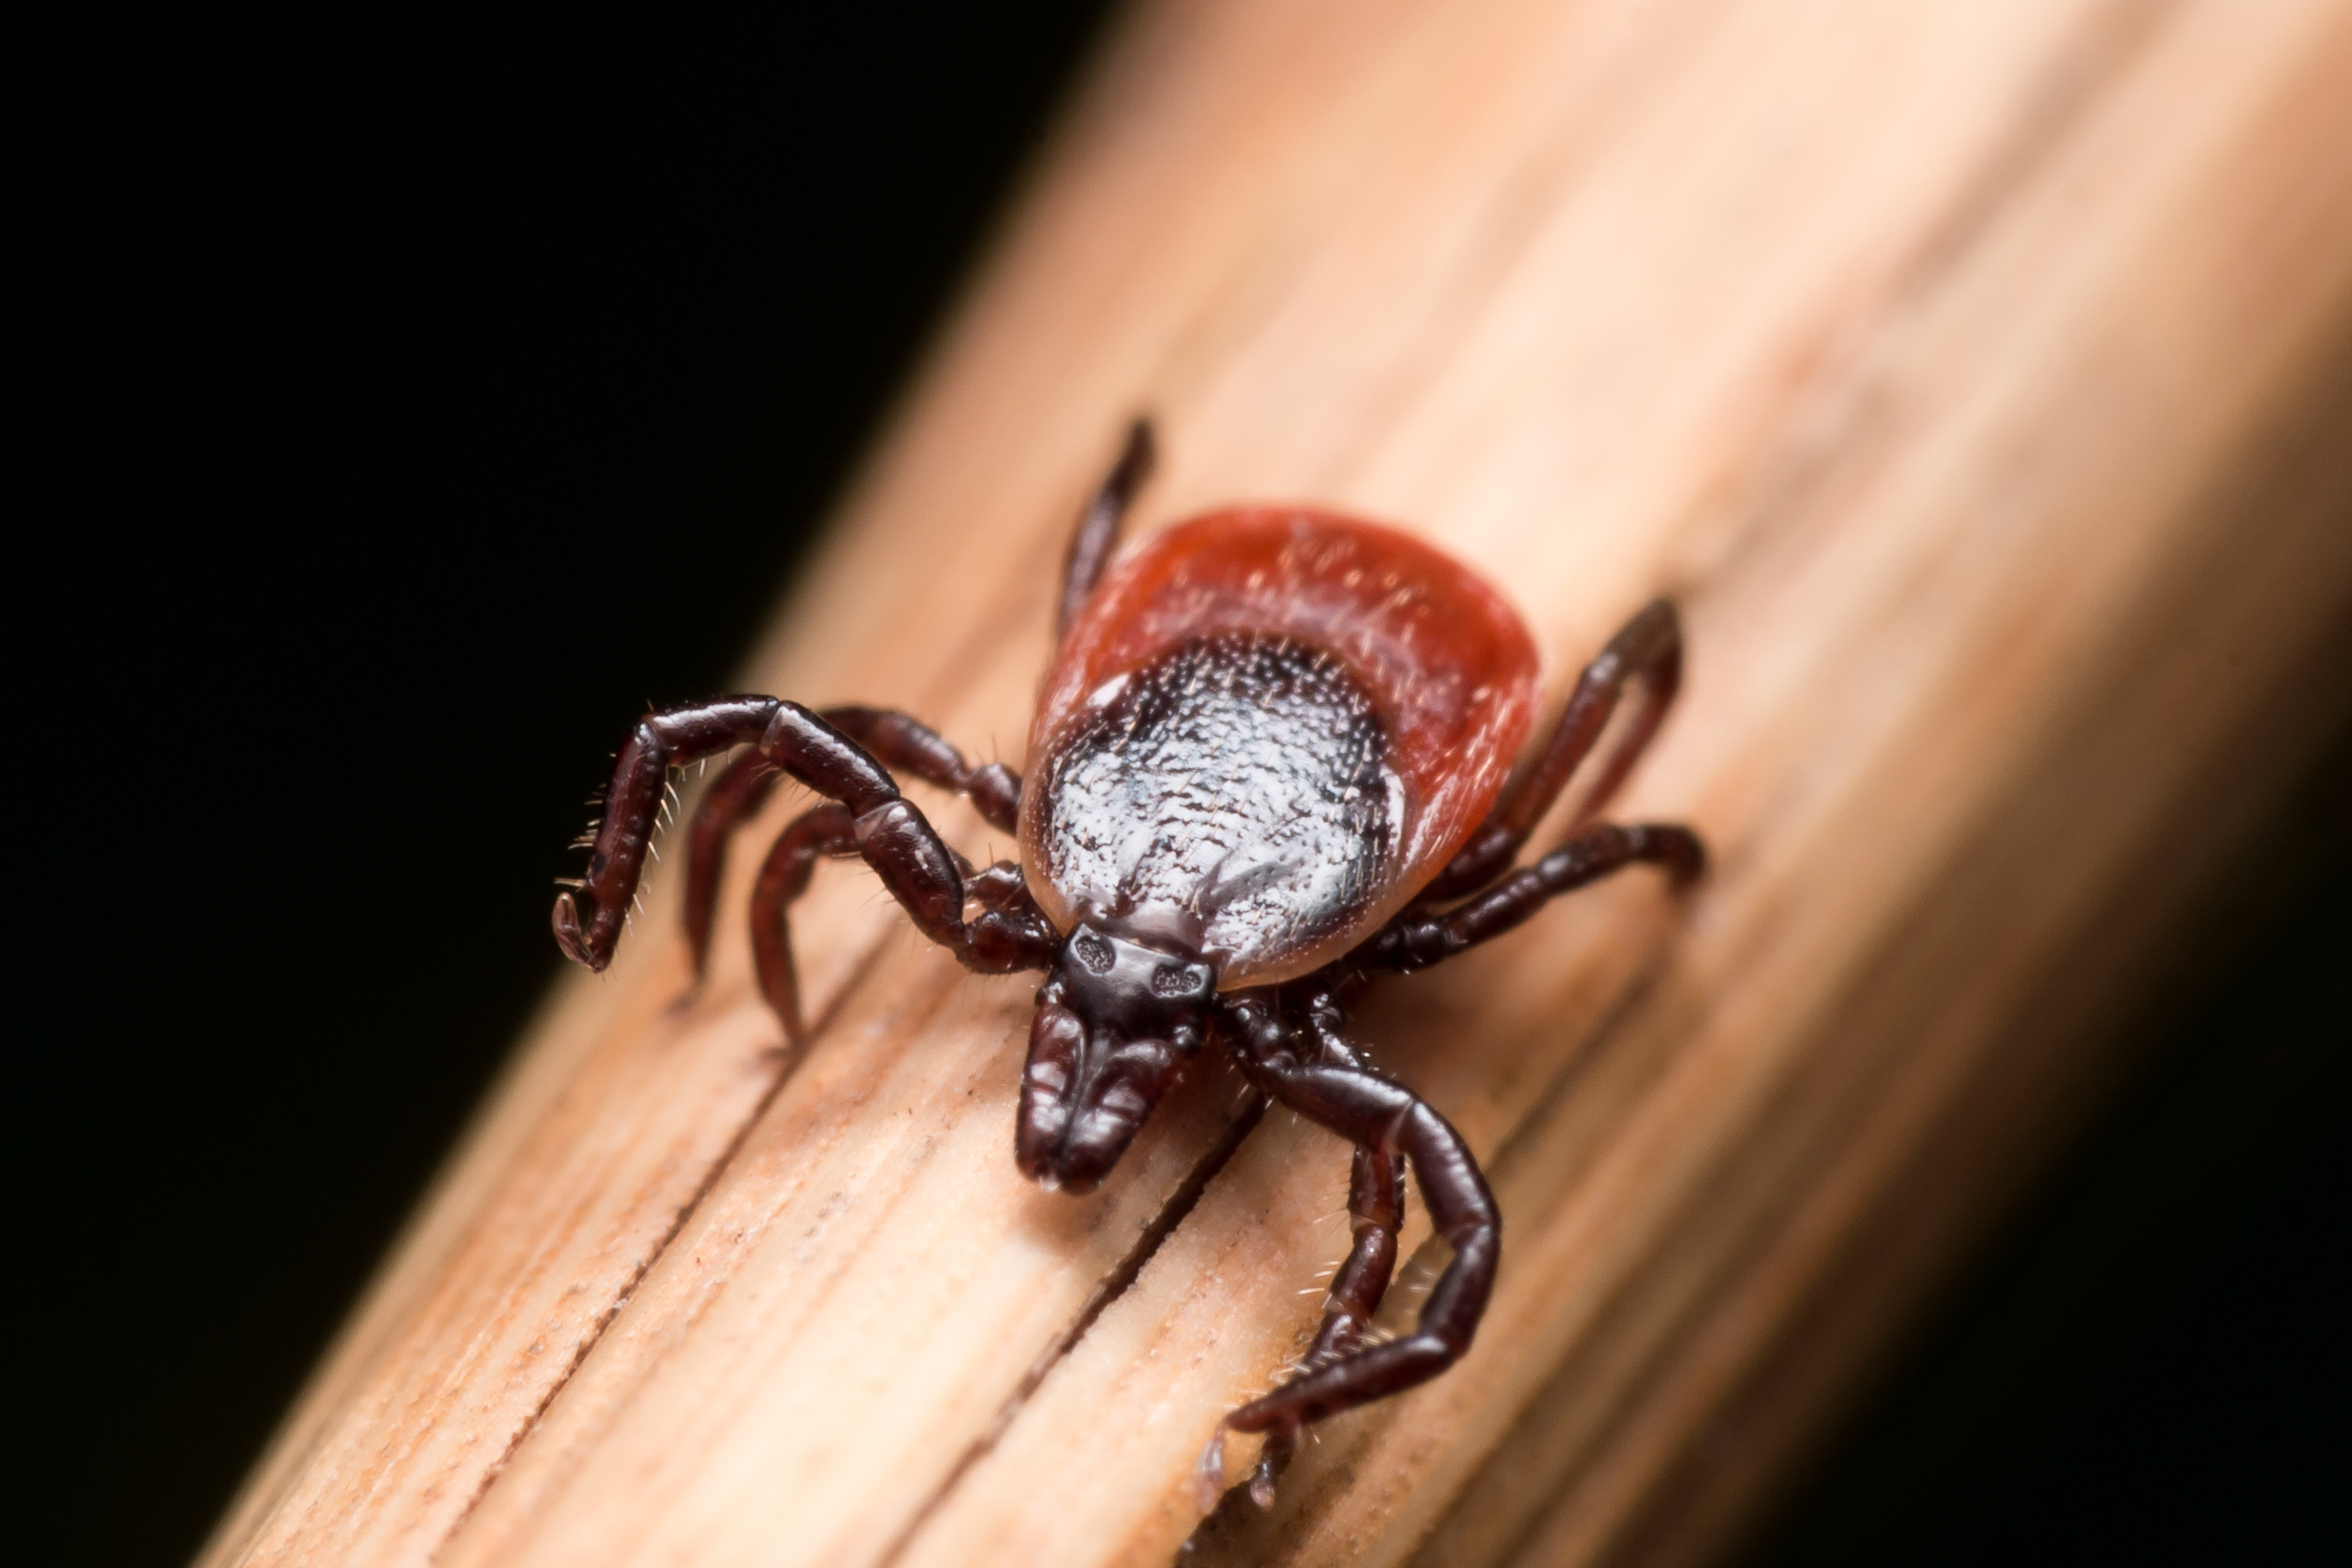 From bug to drug: tick saliva could be key to treating heart disease